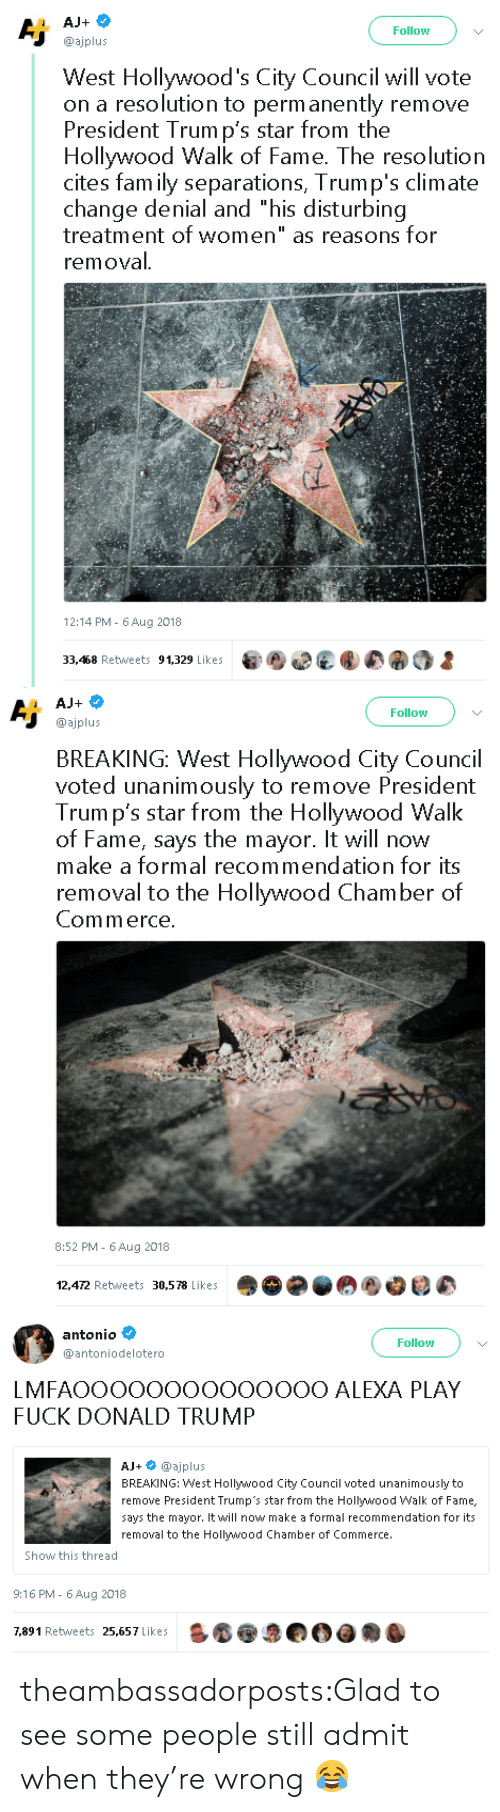 """chamber: Follow  @ajplus  West Hollywood's City Council will vote  on a resolution to perm anently remove  President Trum p's star from the  Hollywood Walk of Fame. The resolution  cites fam ily separations, Trump's climate  change denial and """"his disturbing  treatment of women"""" as reasons for  removal  12:14 PM- 6Aug 2018  33,468 Retweets 91,329 Likes   Follow  @ajplus  BREAKING: West Hollywood City Council  voted unanimously to remove President  Trum p's star from the Hollywood Walk  of Fame, says the mayor. It will now  make a formal recommendation for its  removal to the Hollywood Chamber of  Commerce  8:52 PM - 6Aug 2018  12,472 Retweets 30,578 Likes   antonio  @antoniodelotero  Follow  LMFAOOOOOOOOOOOOOO ALEXA PLAY  FUCK DONALD TRUMP  AJ+ @ajplus  BREAKING: West Hollywood City Council voted unanimously to  remove President Trump's star from the Hollywood Walk of Fame,  says the mayor. It will now make a formal recommendation for its  removal to the Hollywood Chamber of Commerce.  Show this thread  9:16 PM- 6 Aug 2018  7,891 Retweets 25,657 Likes theambassadorposts:Glad to see some people still admit when they're wrong 😂"""